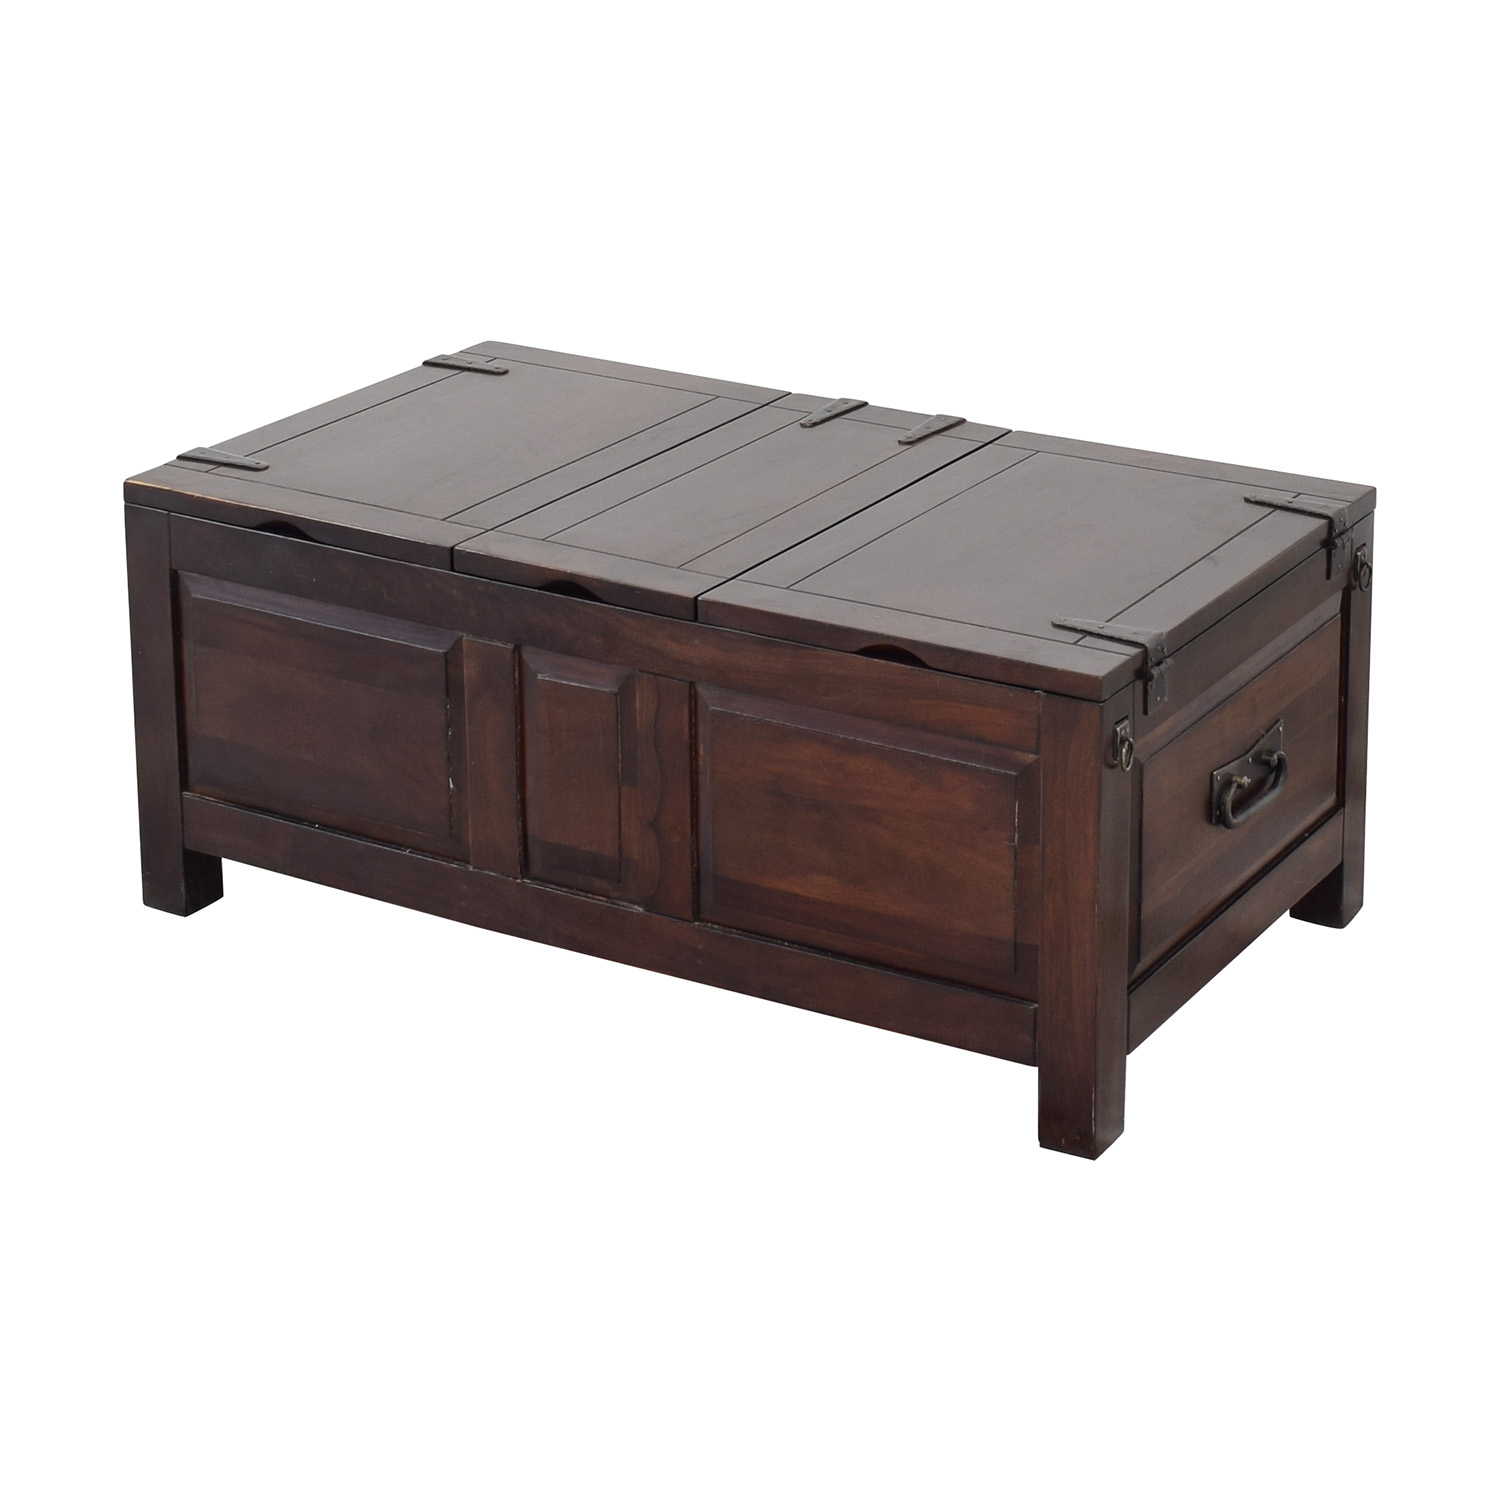 Crate & Barrel Crate & Barrel Storage Coffee Table Trunk ct